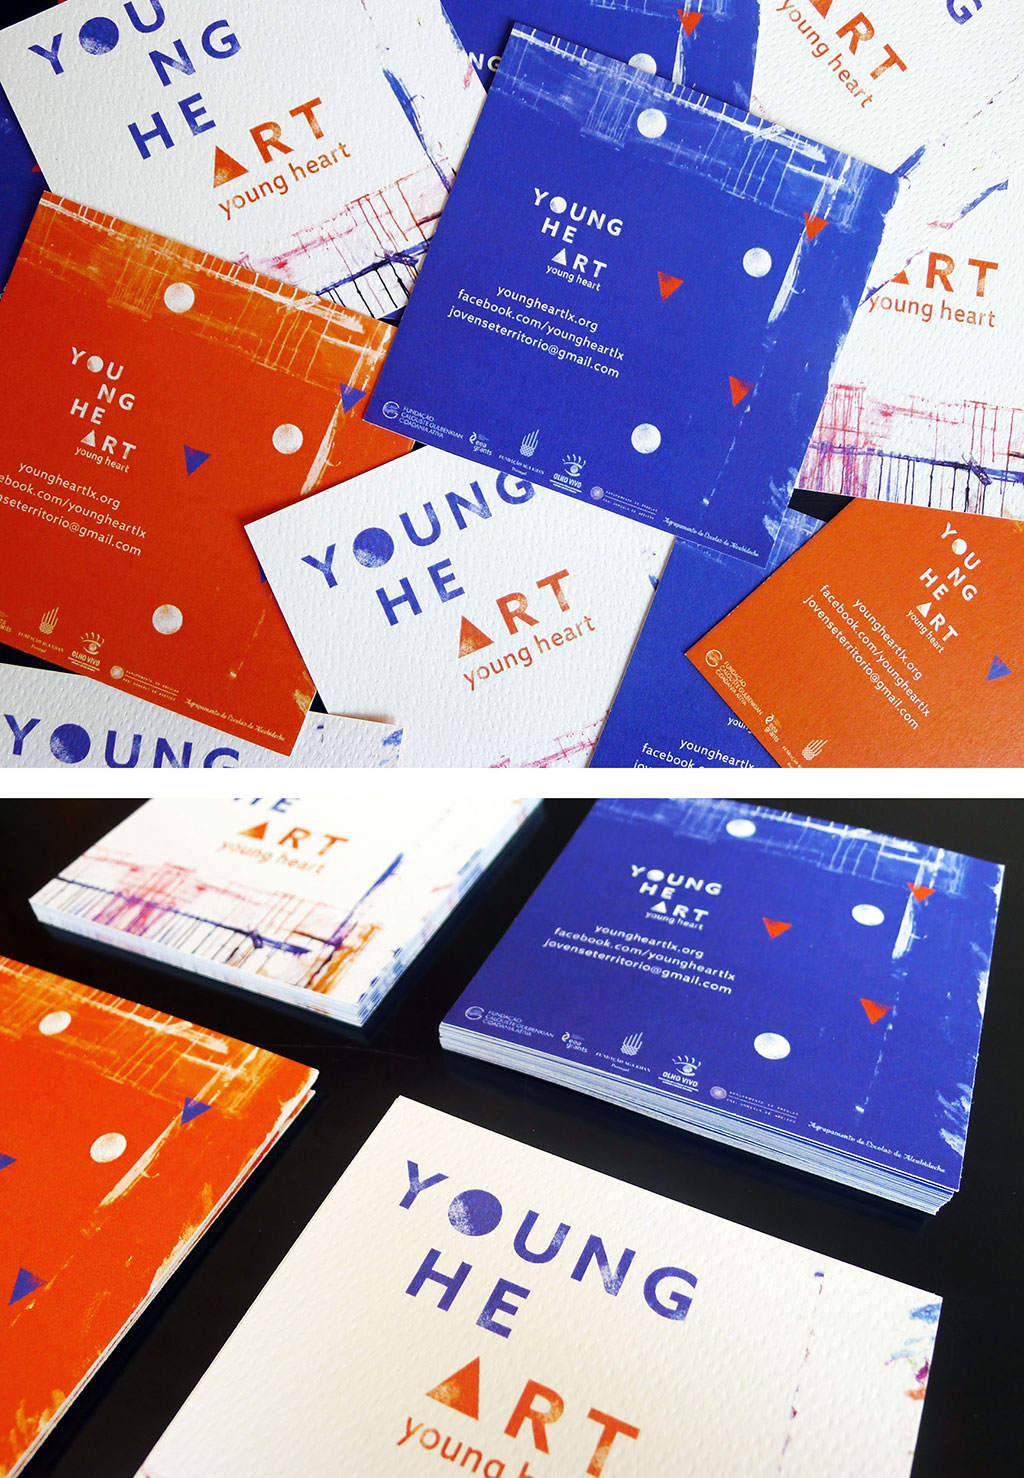 YOUNG HE-ART <br> Visual identity